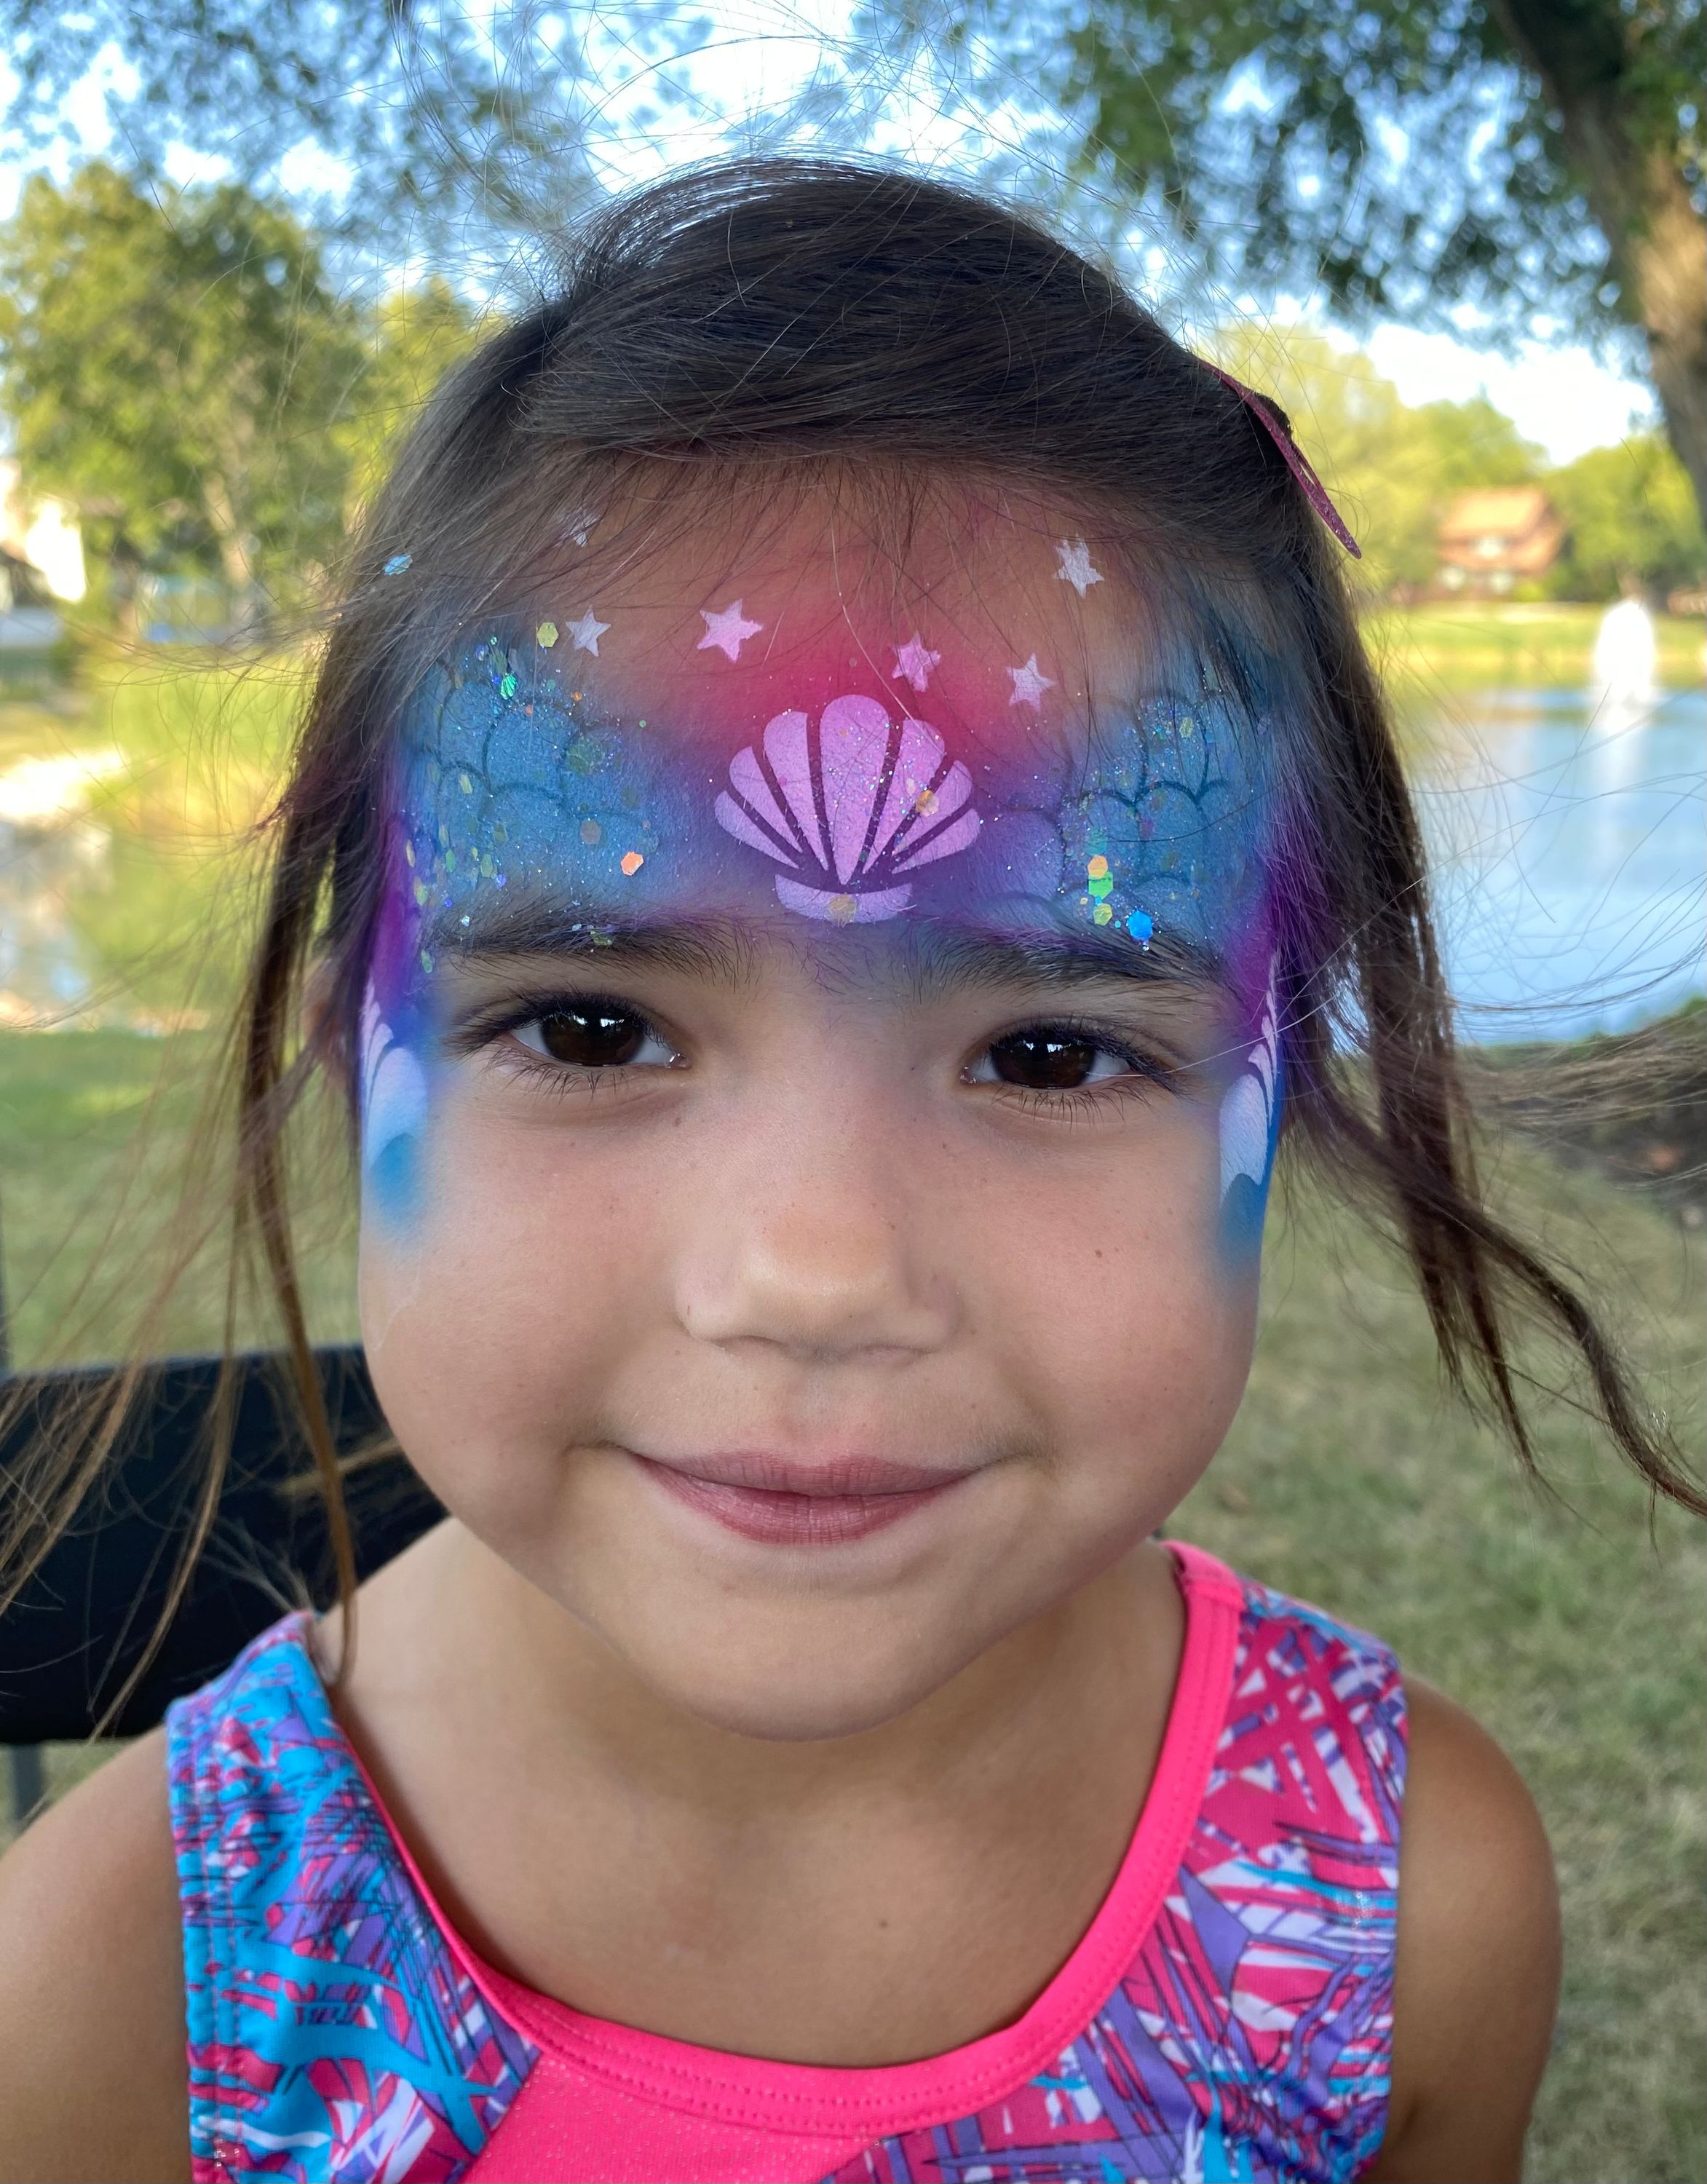 Face Painting by Valery - Airbrush Mermaid